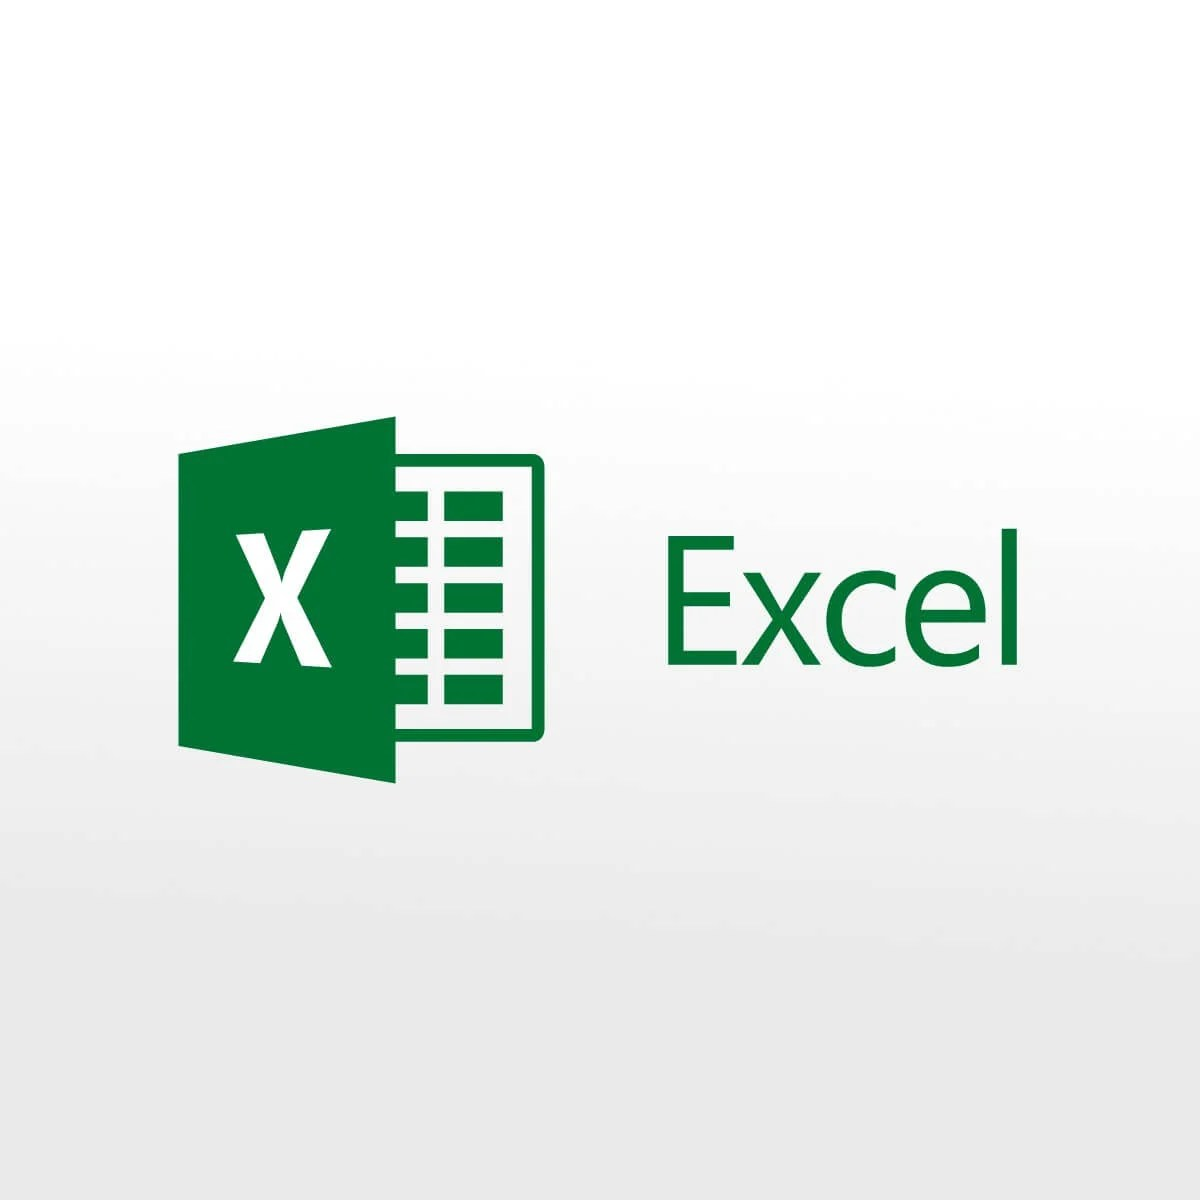 Microsoft Excel Is Waiting For Another Application To